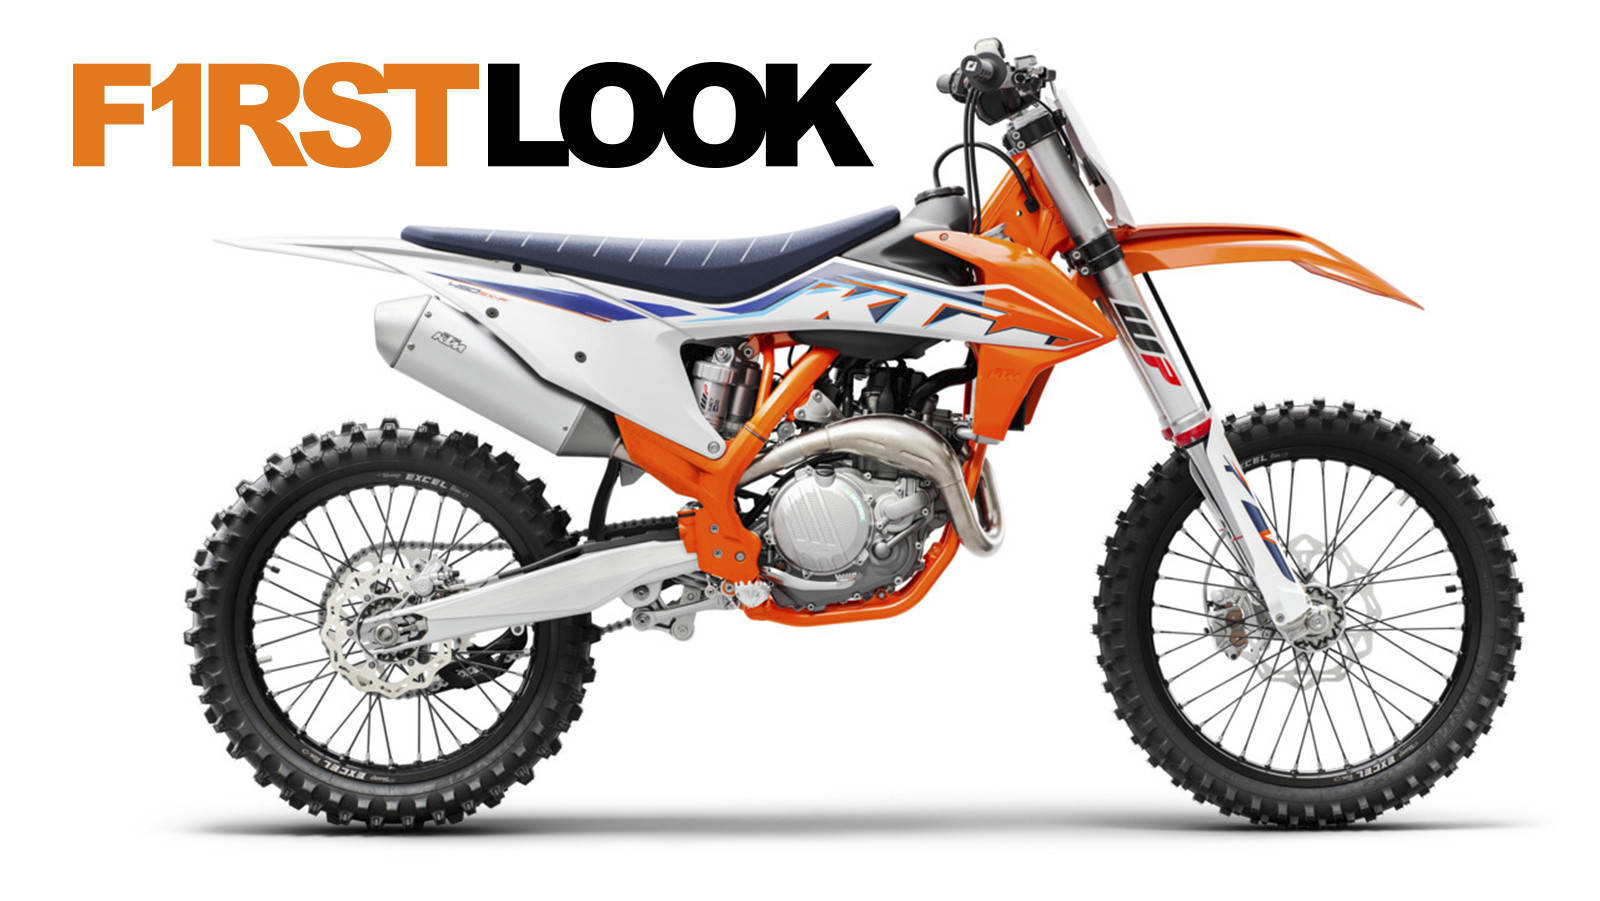 First Look: 2022 KTM Motocross and XC Models